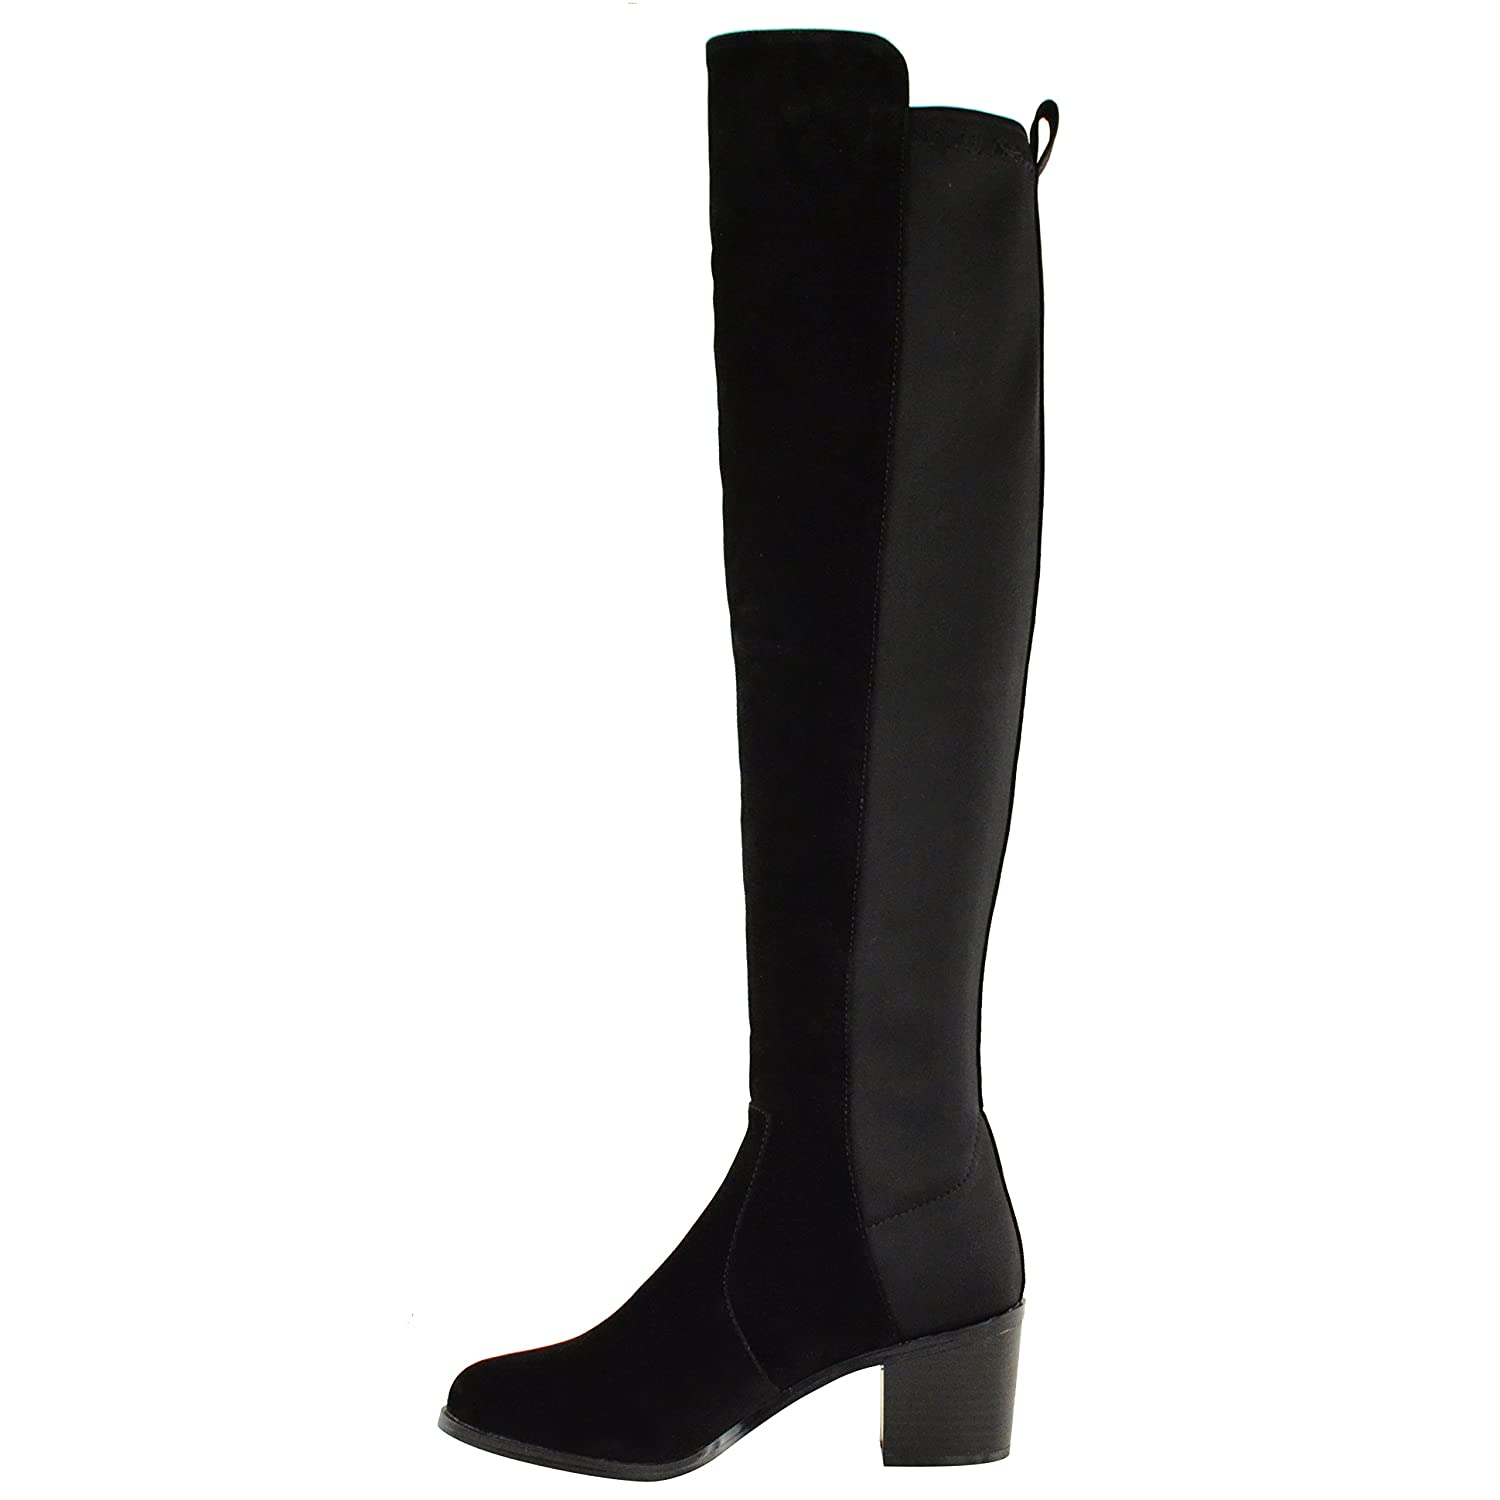 WOMENS LADIES OVER THE KNEE THIGH HIGH STRETCH PULL ON LOW MID HEEL BOOTS  SHOES: Amazon.co.uk: Shoes & Bags